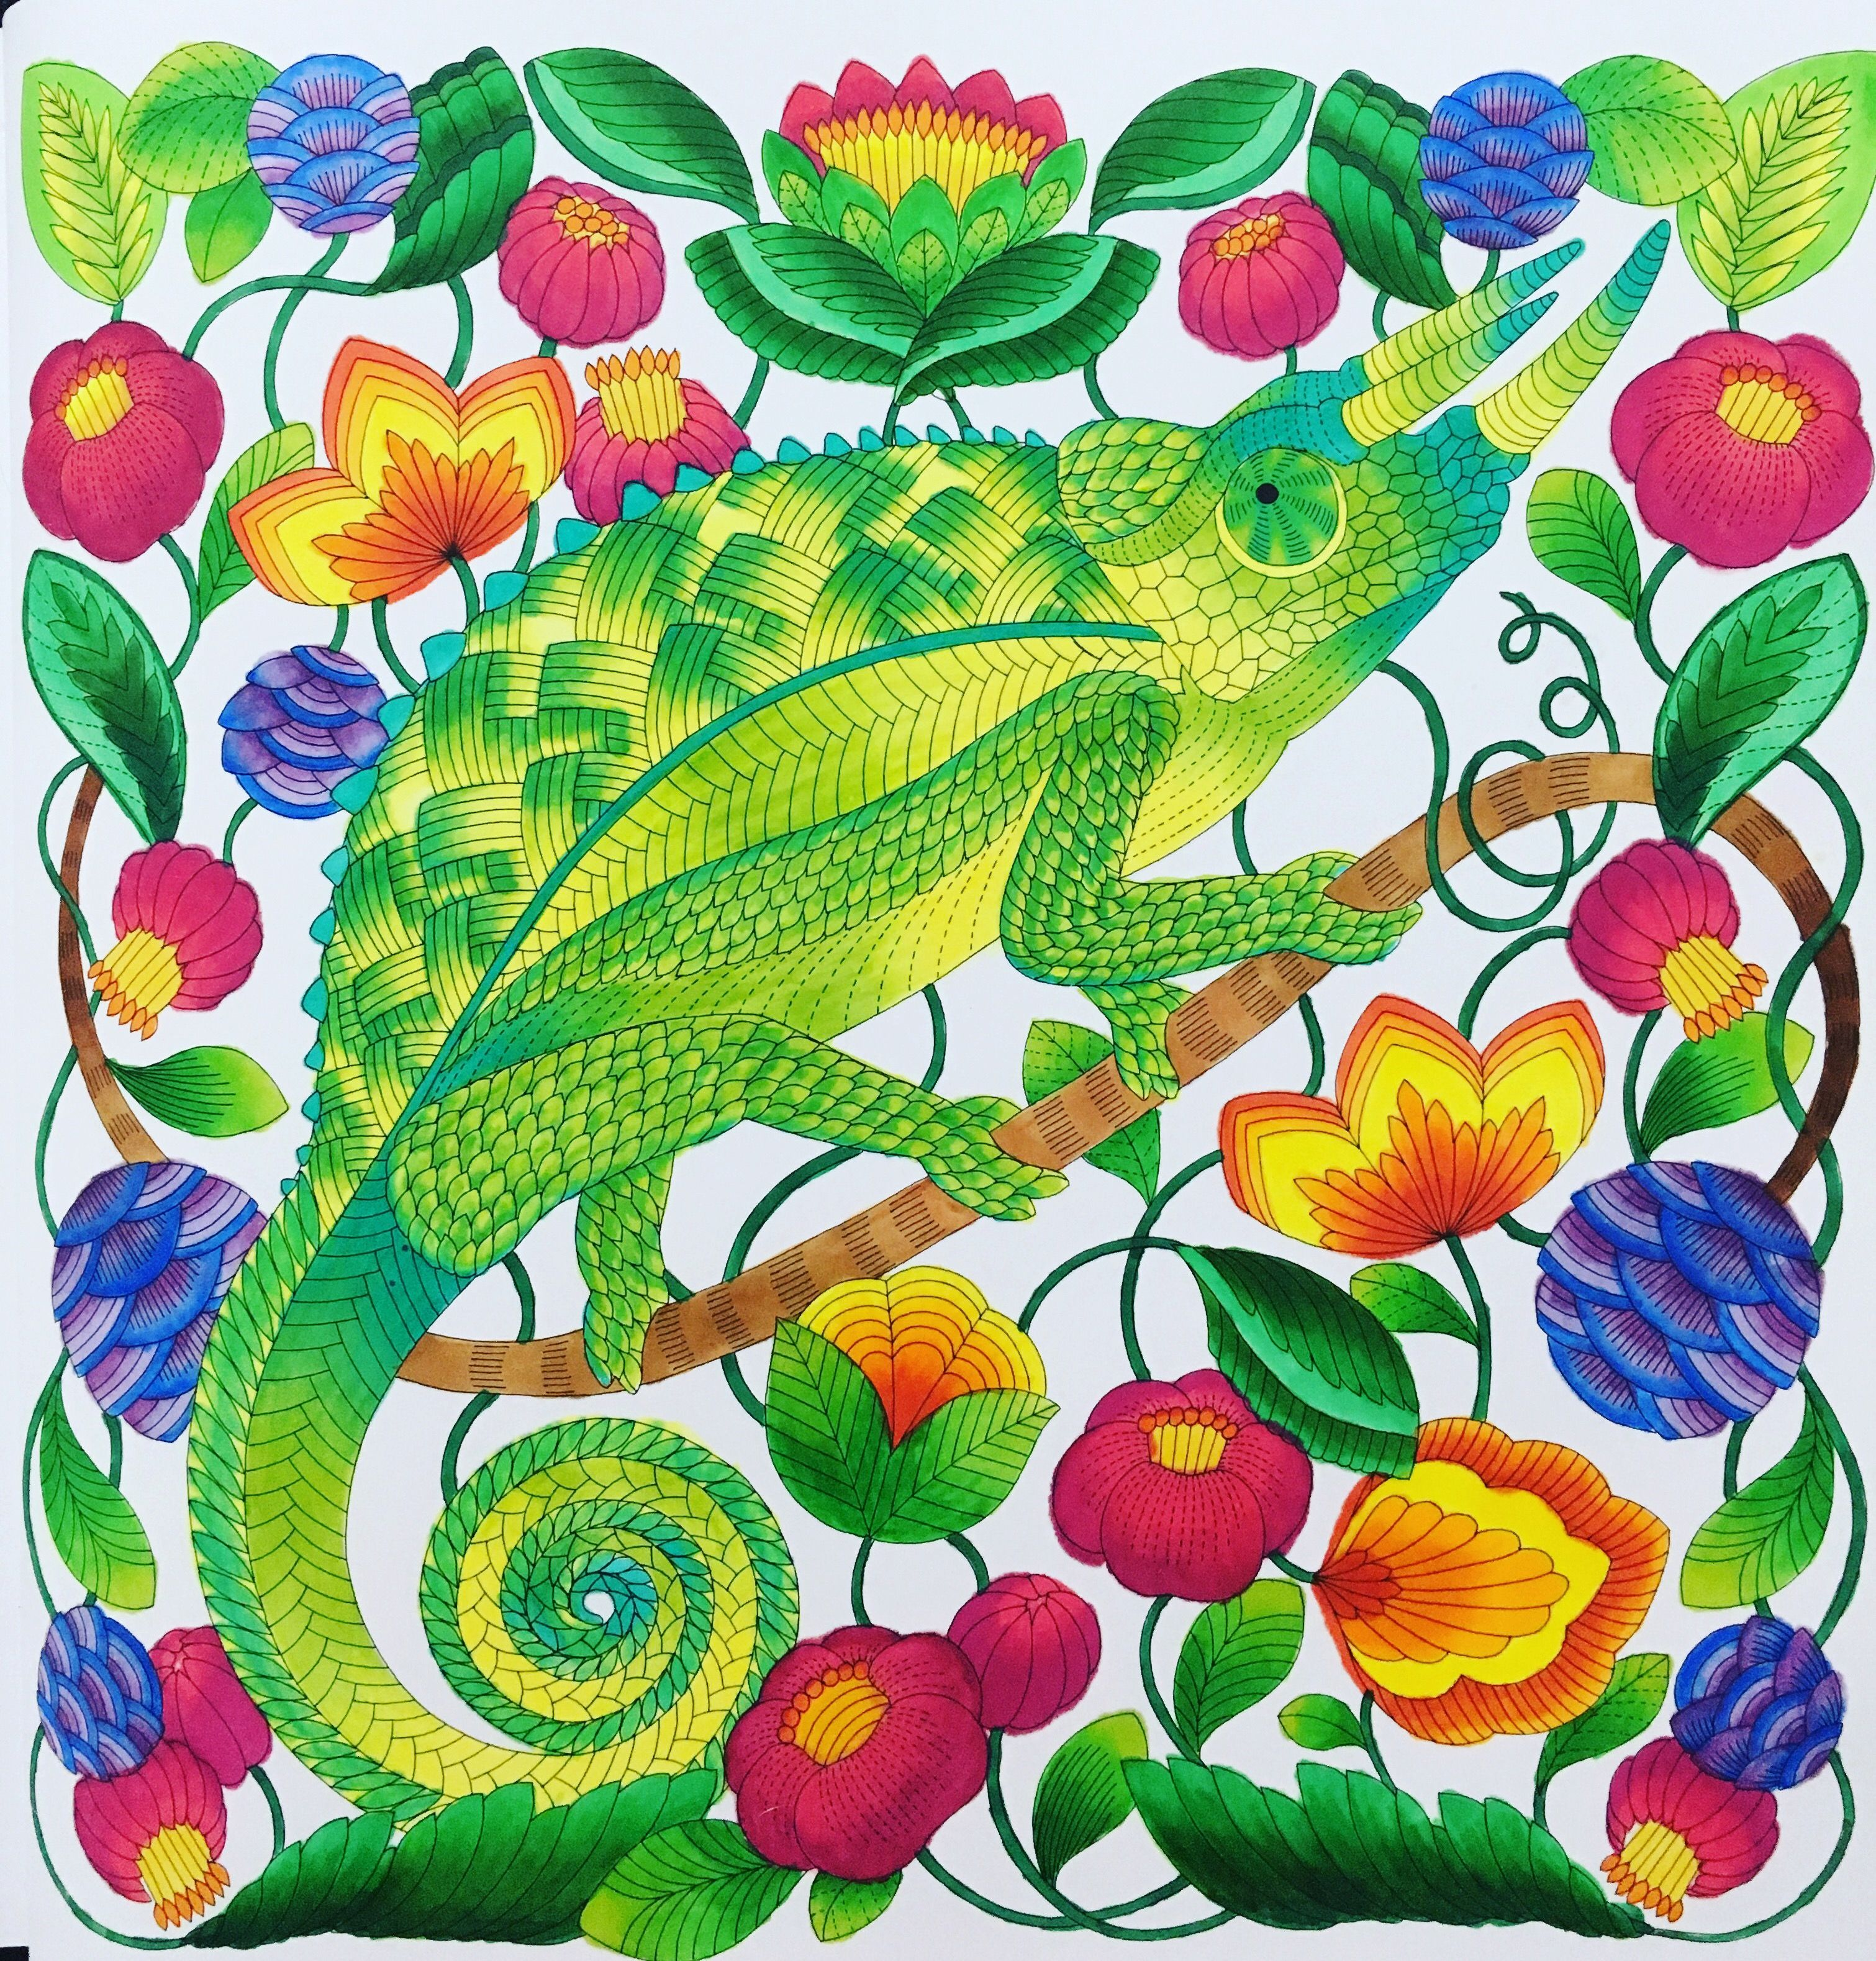 Jacksons Chameleon From Millie Marottas Curious Creatures Using Copic Markers